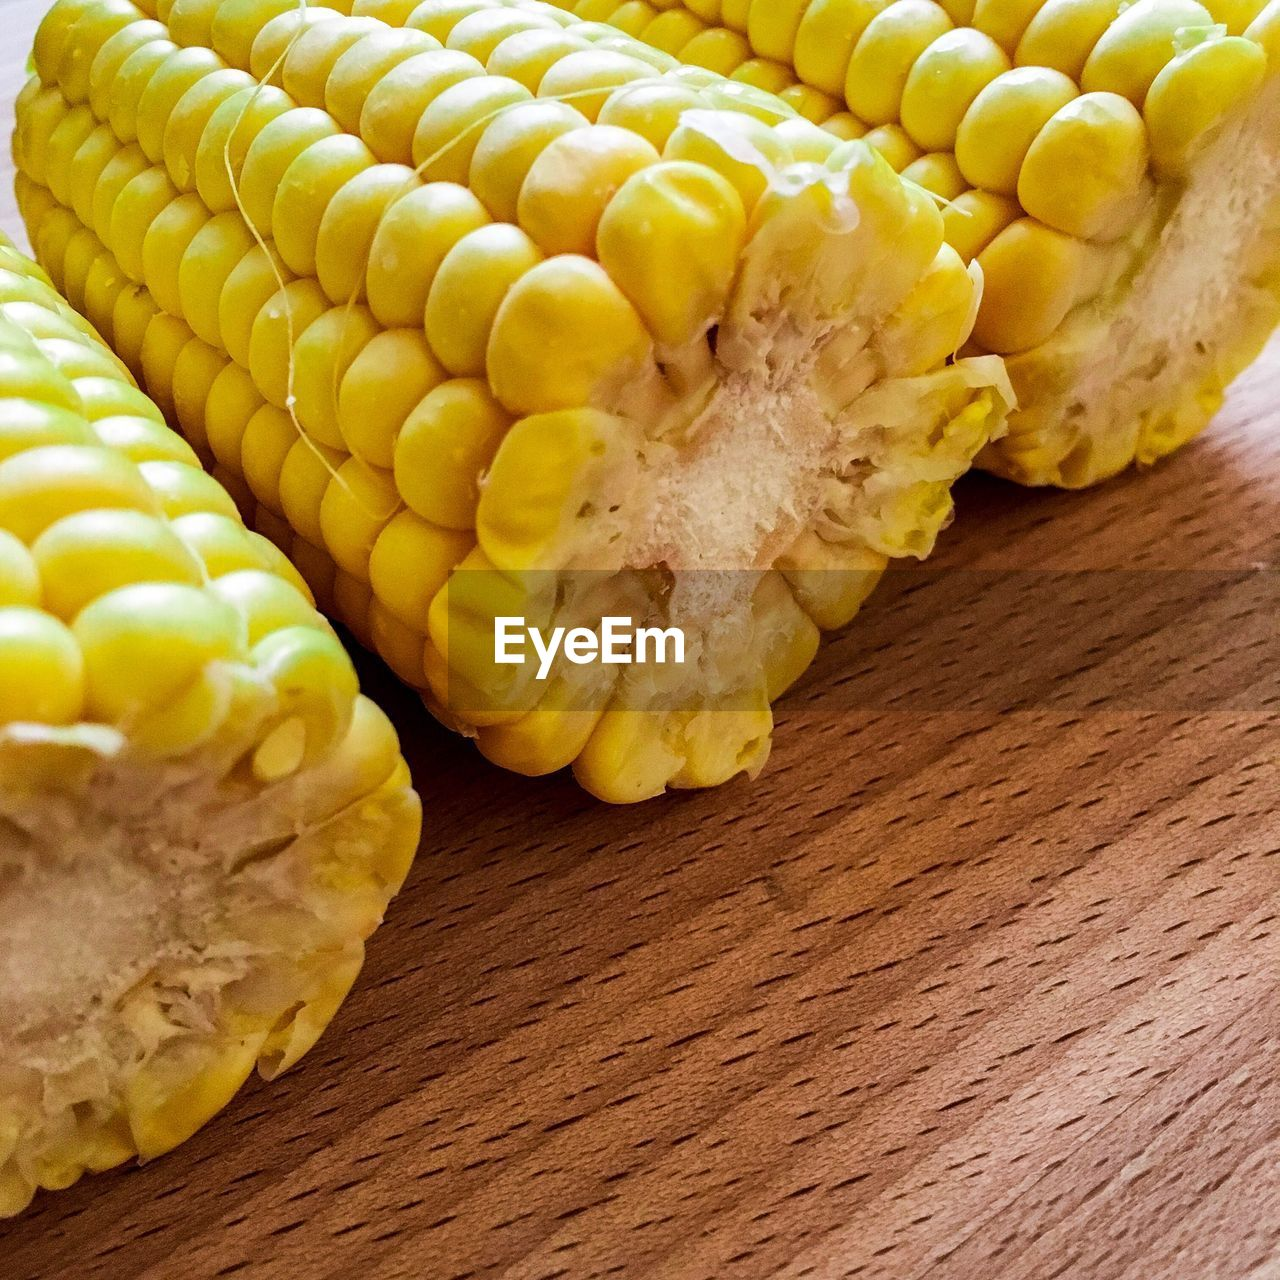 food, food and drink, corn, vegetable, freshness, wellbeing, healthy eating, sweetcorn, yellow, still life, close-up, no people, corn on the cob, table, indoors, raw food, high angle view, wood - material, agriculture, crop, vegetarian food